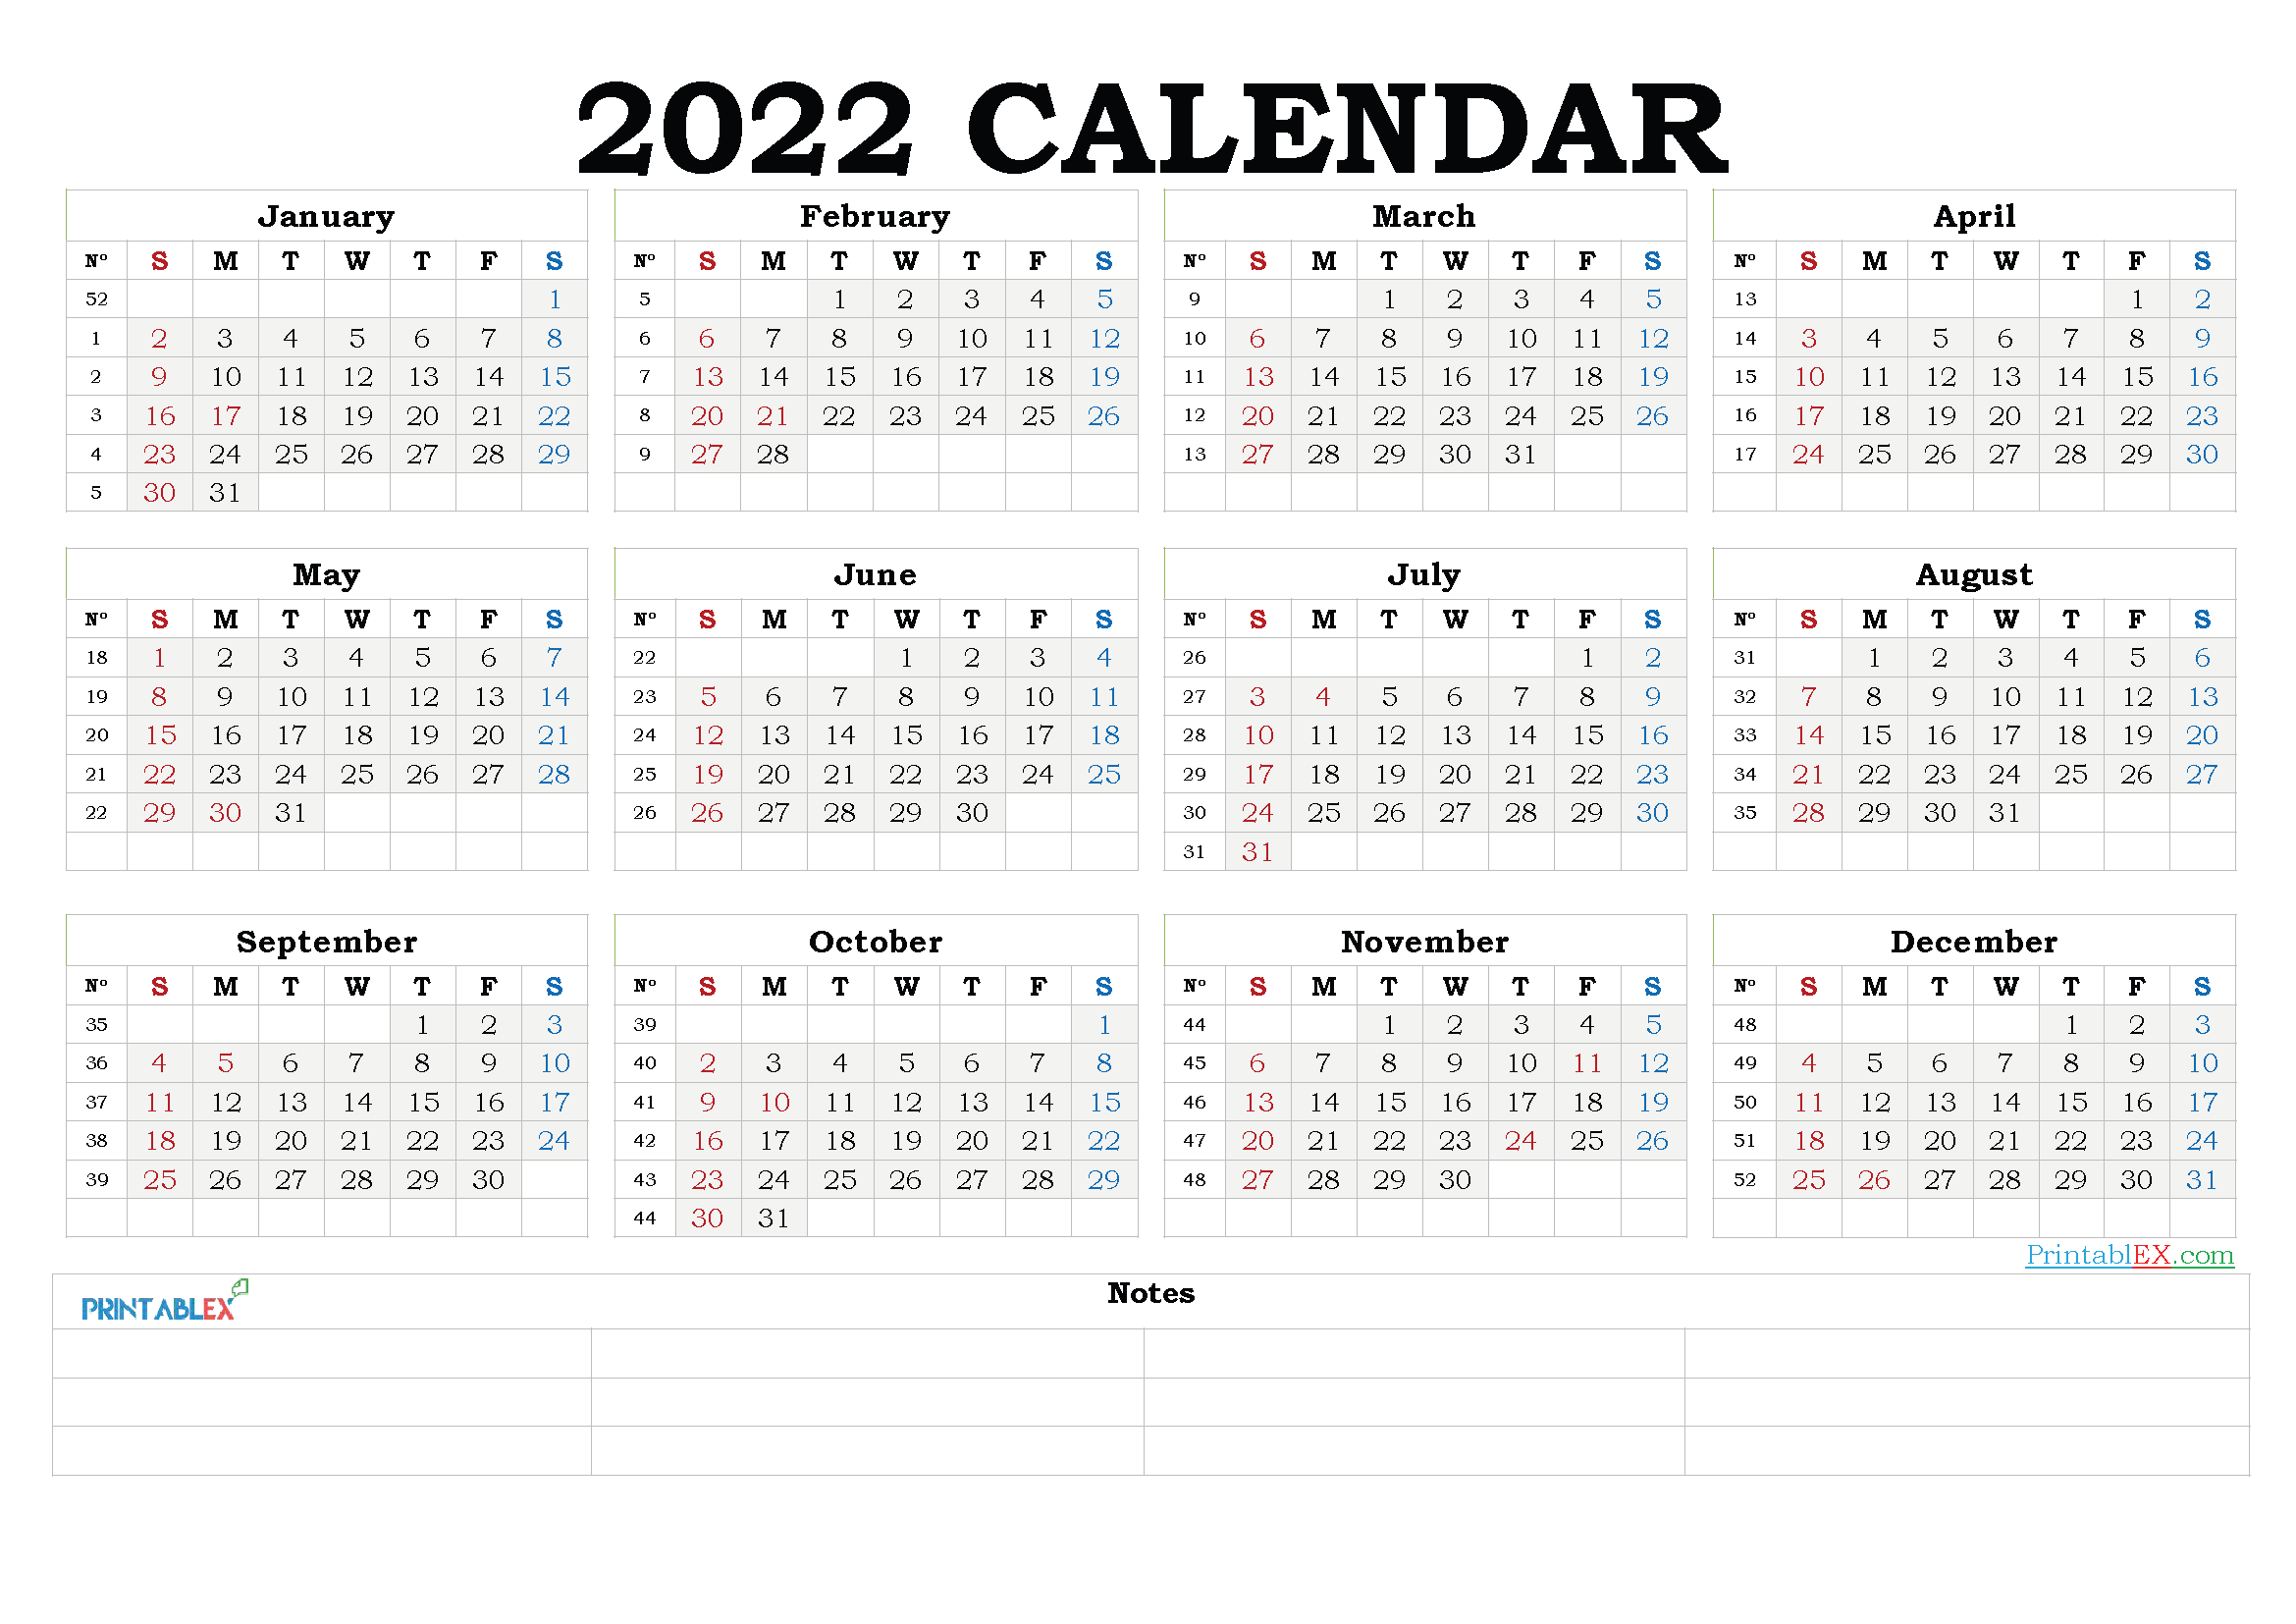 2022 Calendar Template For Word.2022 Free Yearly Calendar Template Word 2021 Free Printable